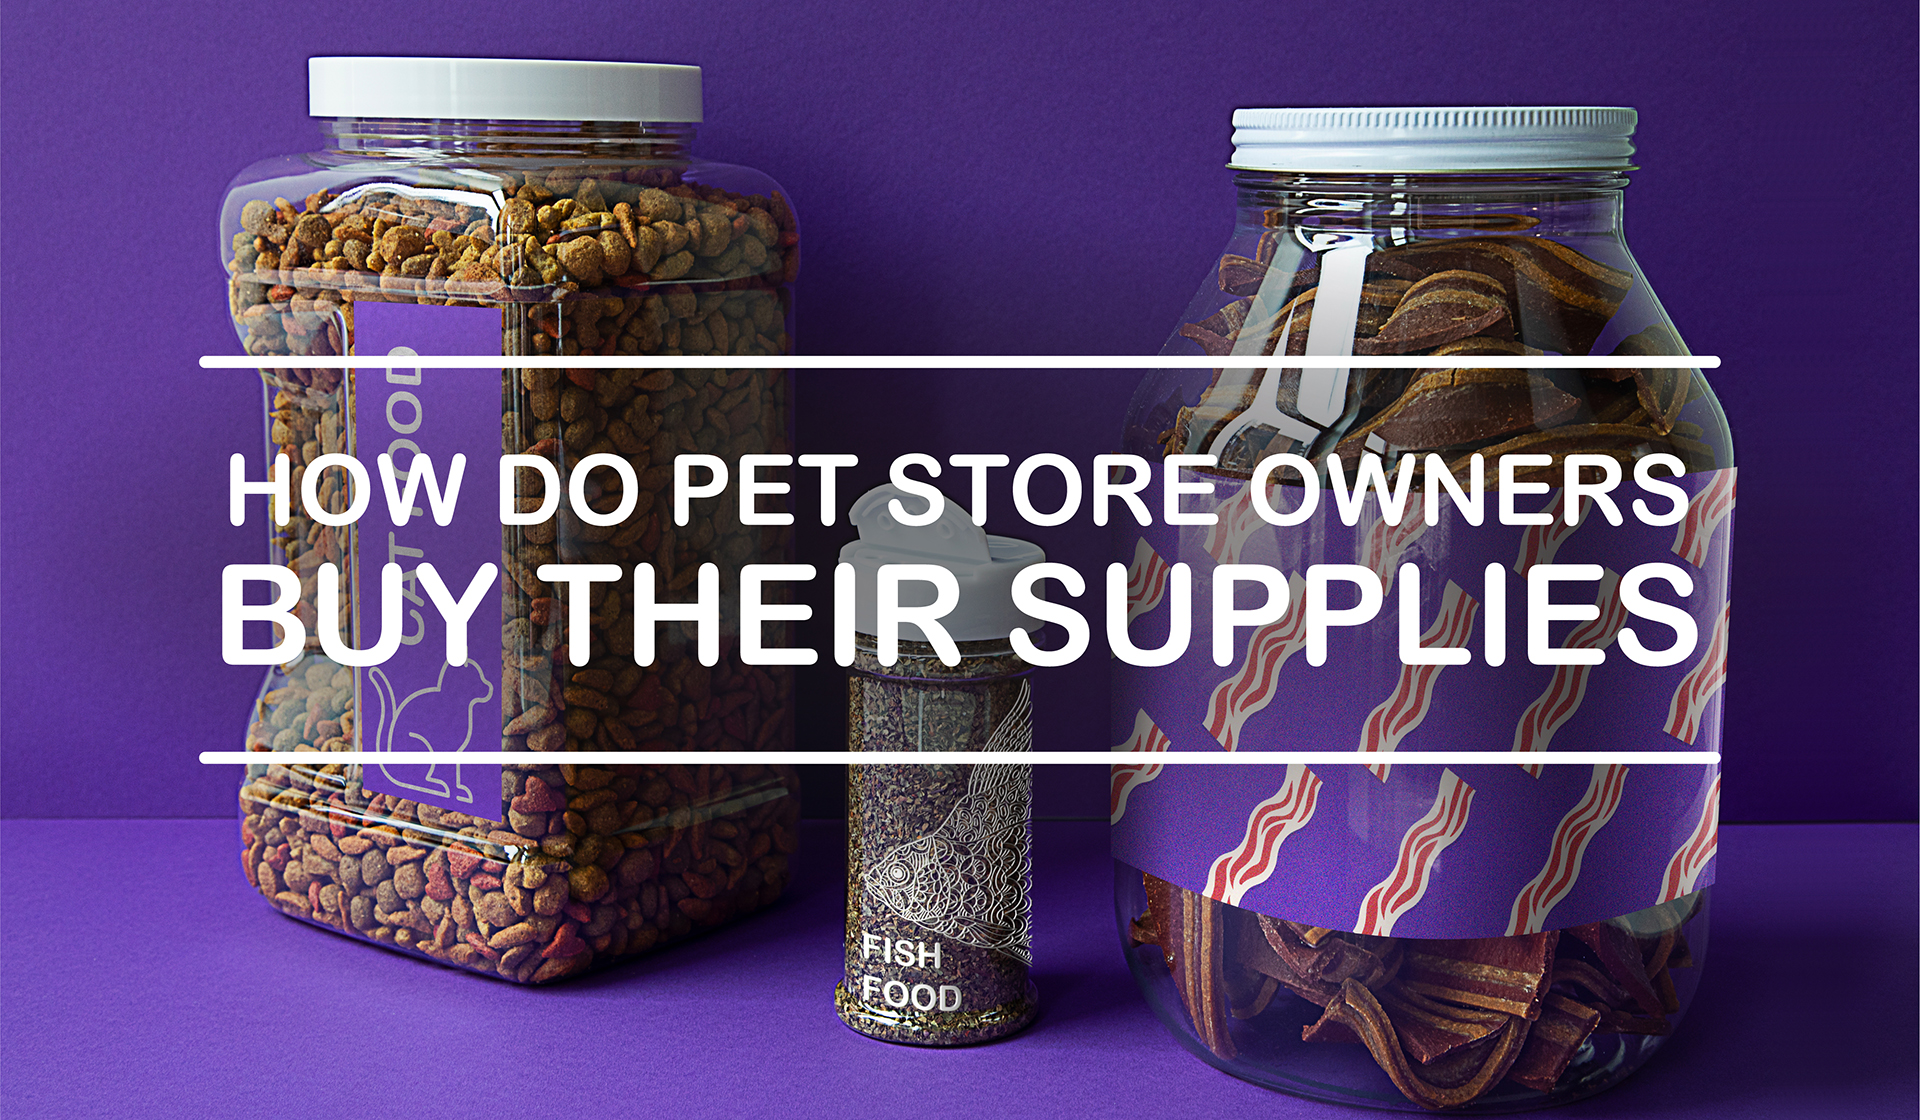 How Do Pet Store Owners Buy Their Supplies?